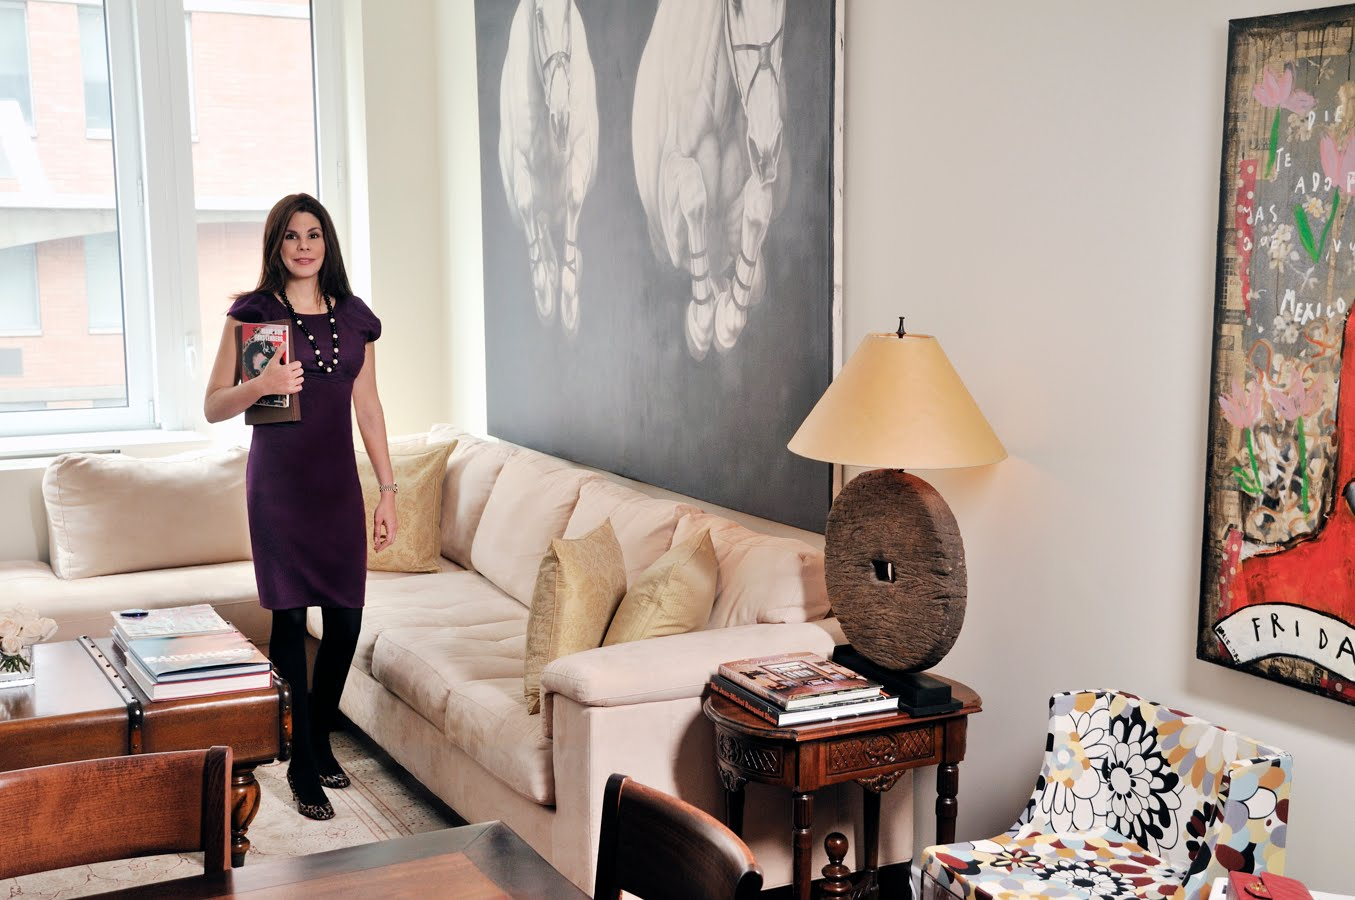 Maria gabriela brito interview interior designer and for Siti di interior design